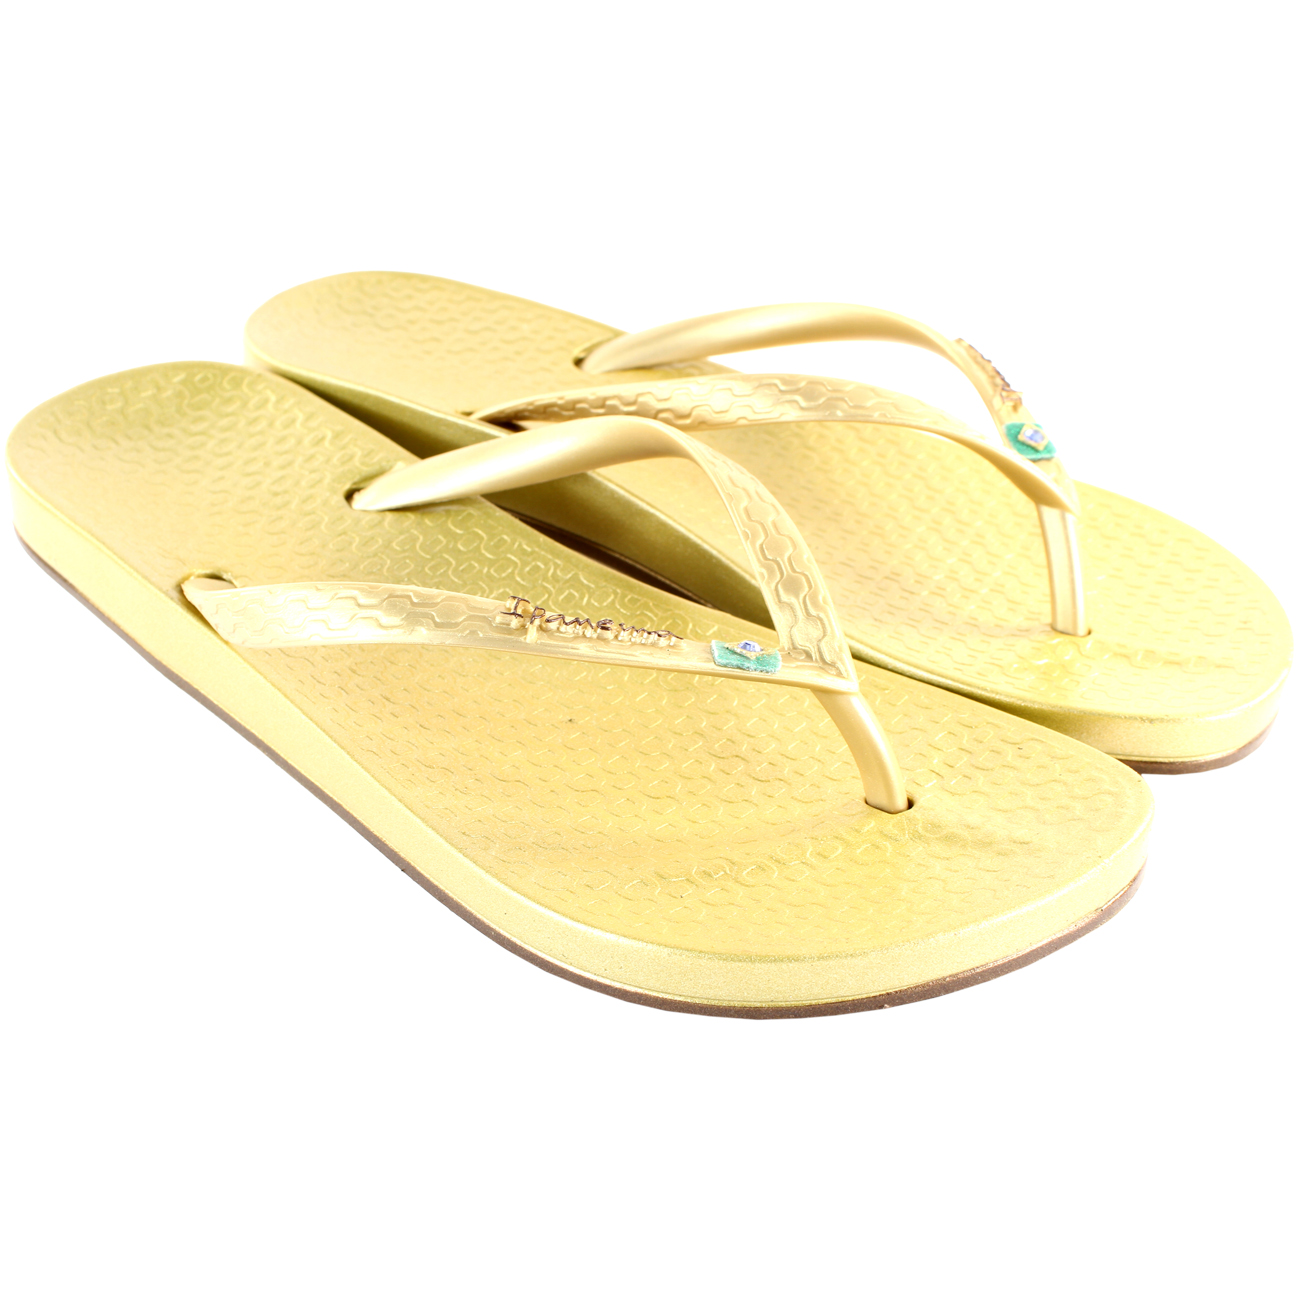 Sandals Sandals Find your dream sandals with our collection of the season's most stylish designer women's sandals including gladiator sandals, wedge sandals and flip flops.